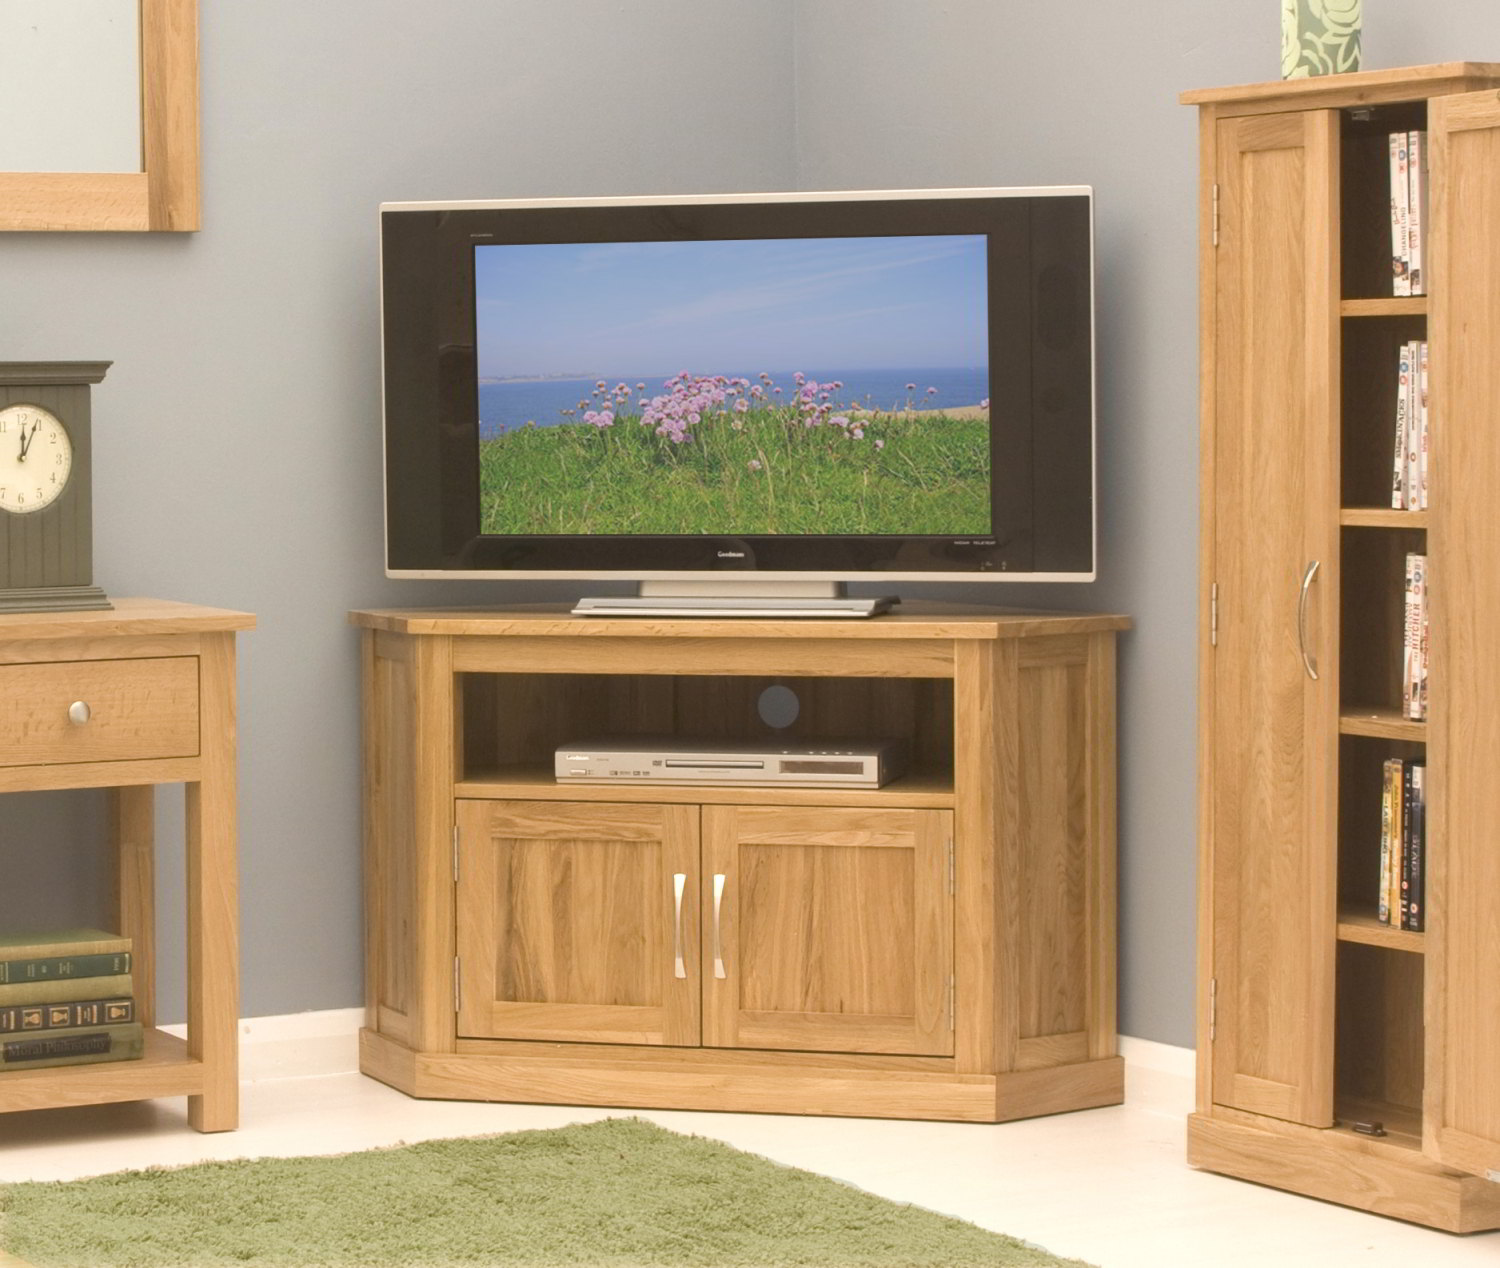 Conran Solid Oak Living Room Furniture Corner Television Cabinet Stand Unit